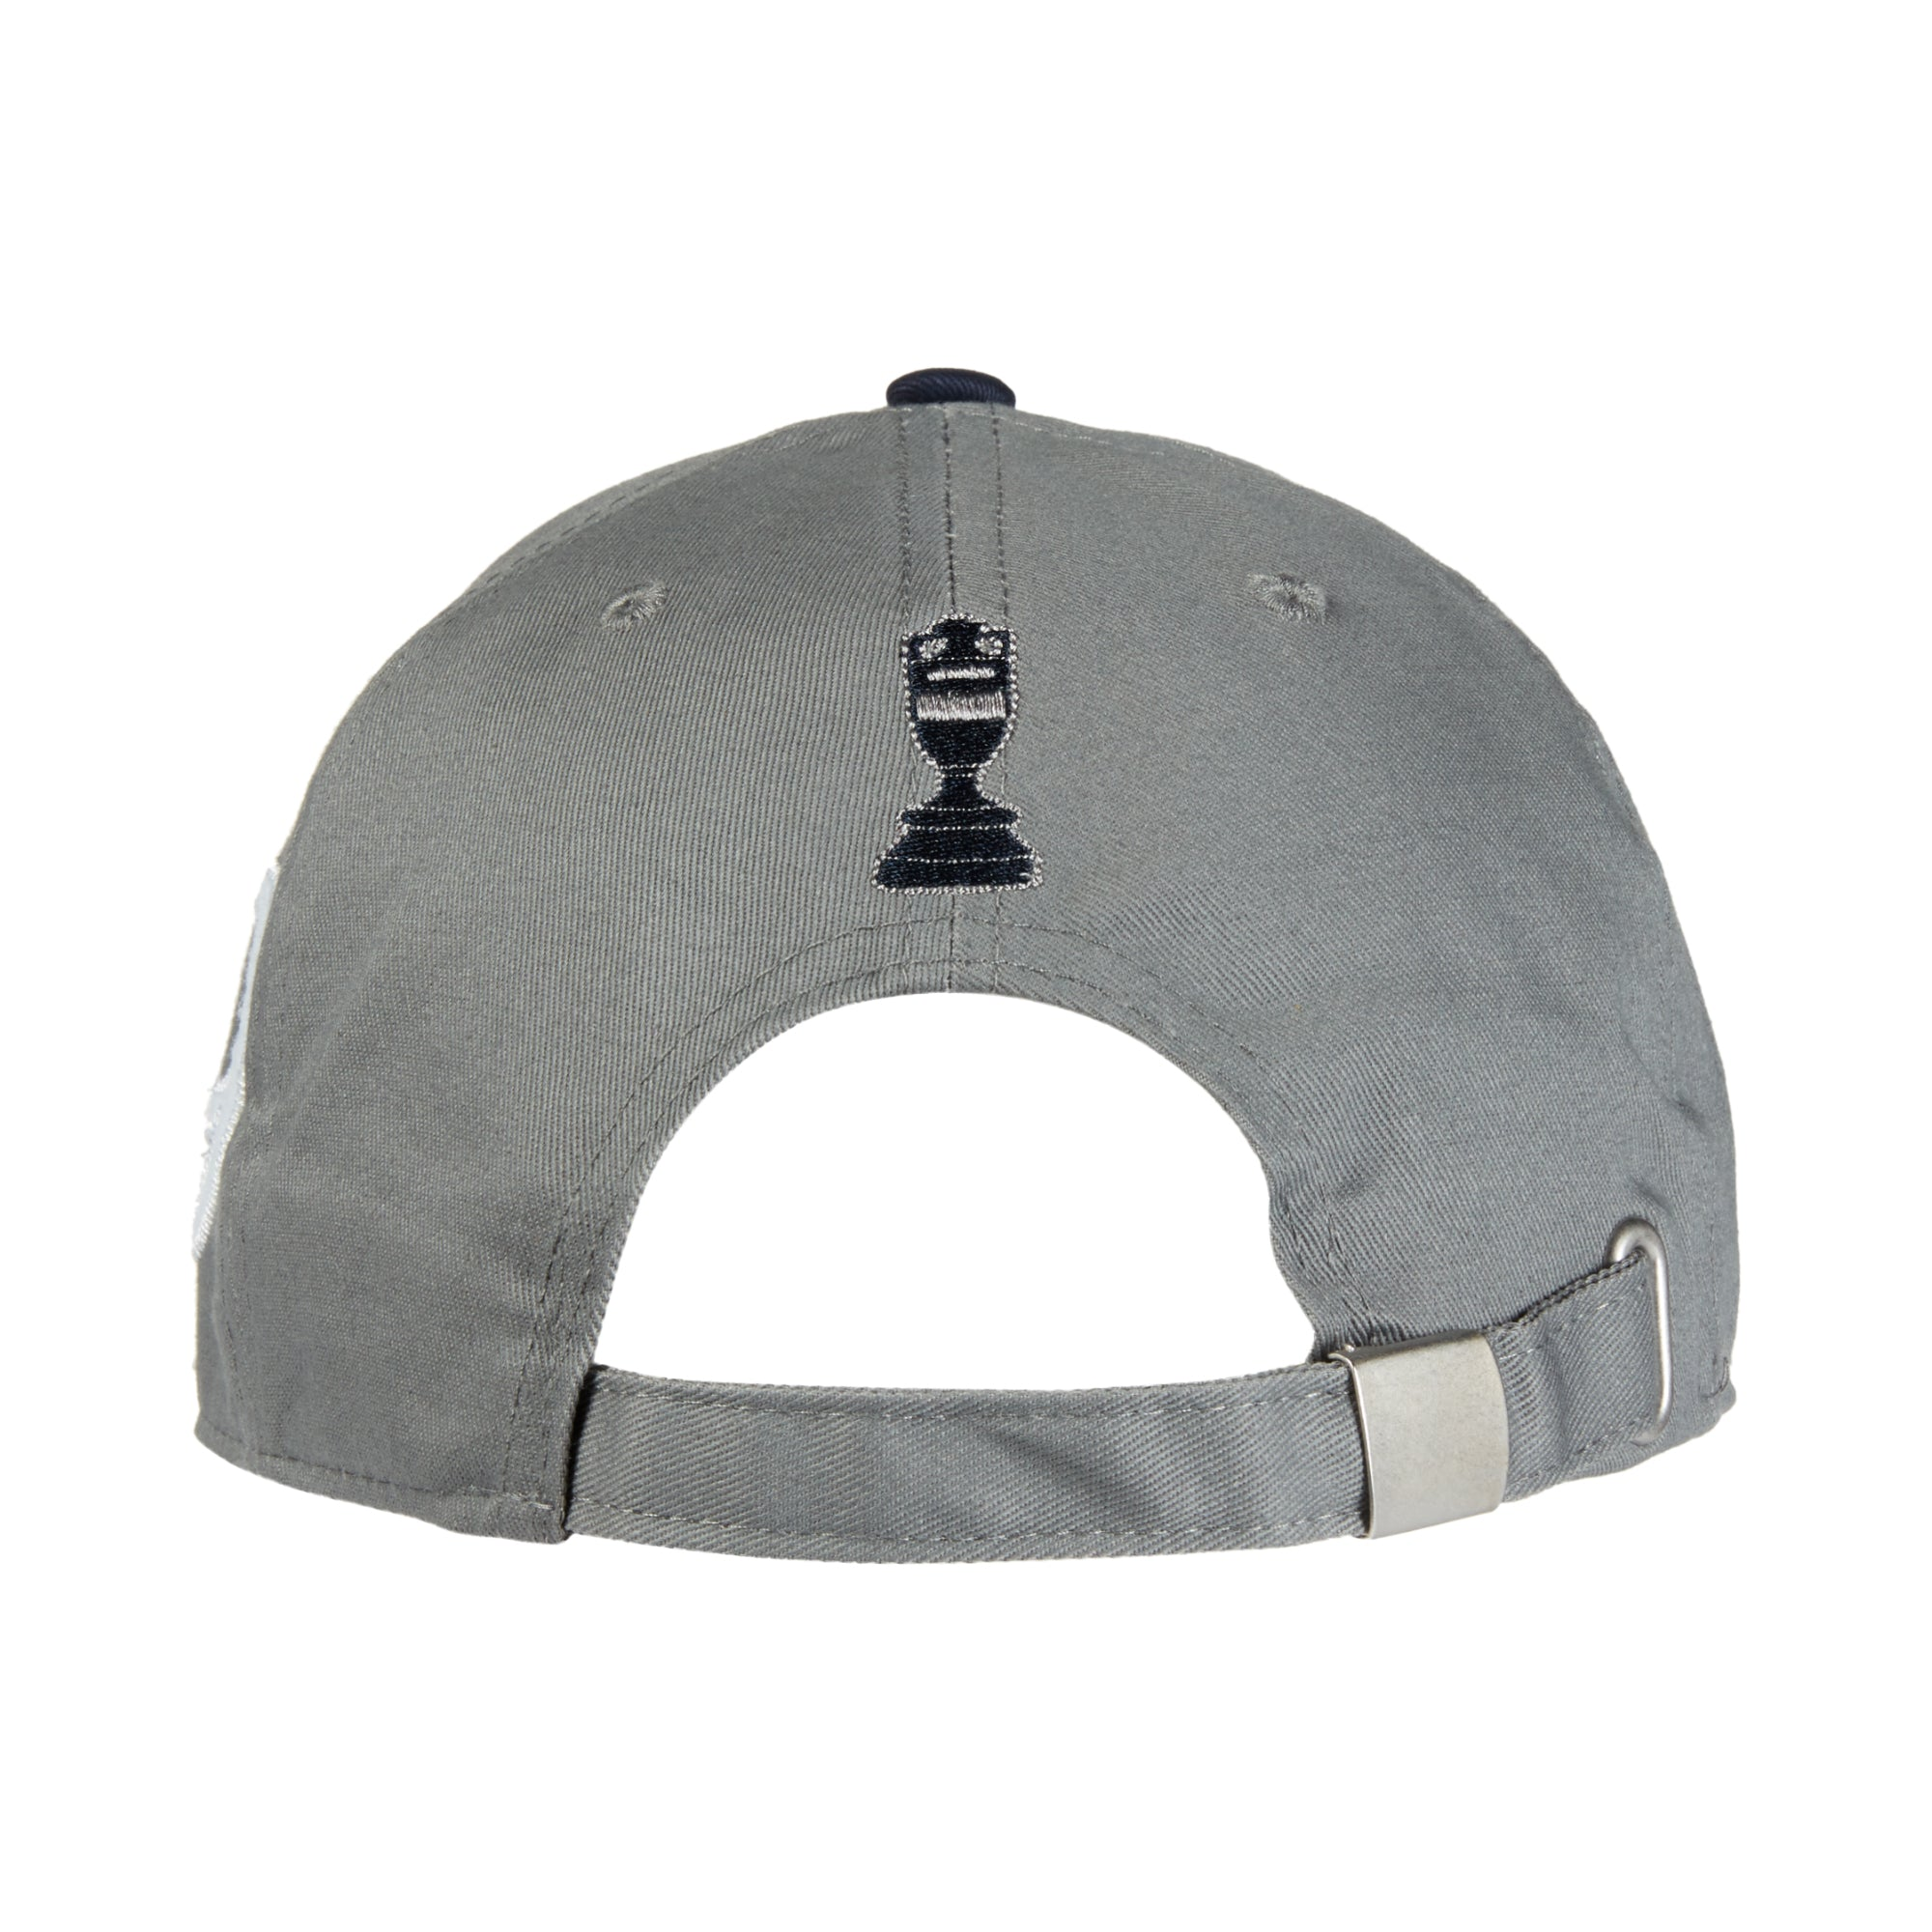 ASHES URN NAVY/GREY CHILDREN'S CAP